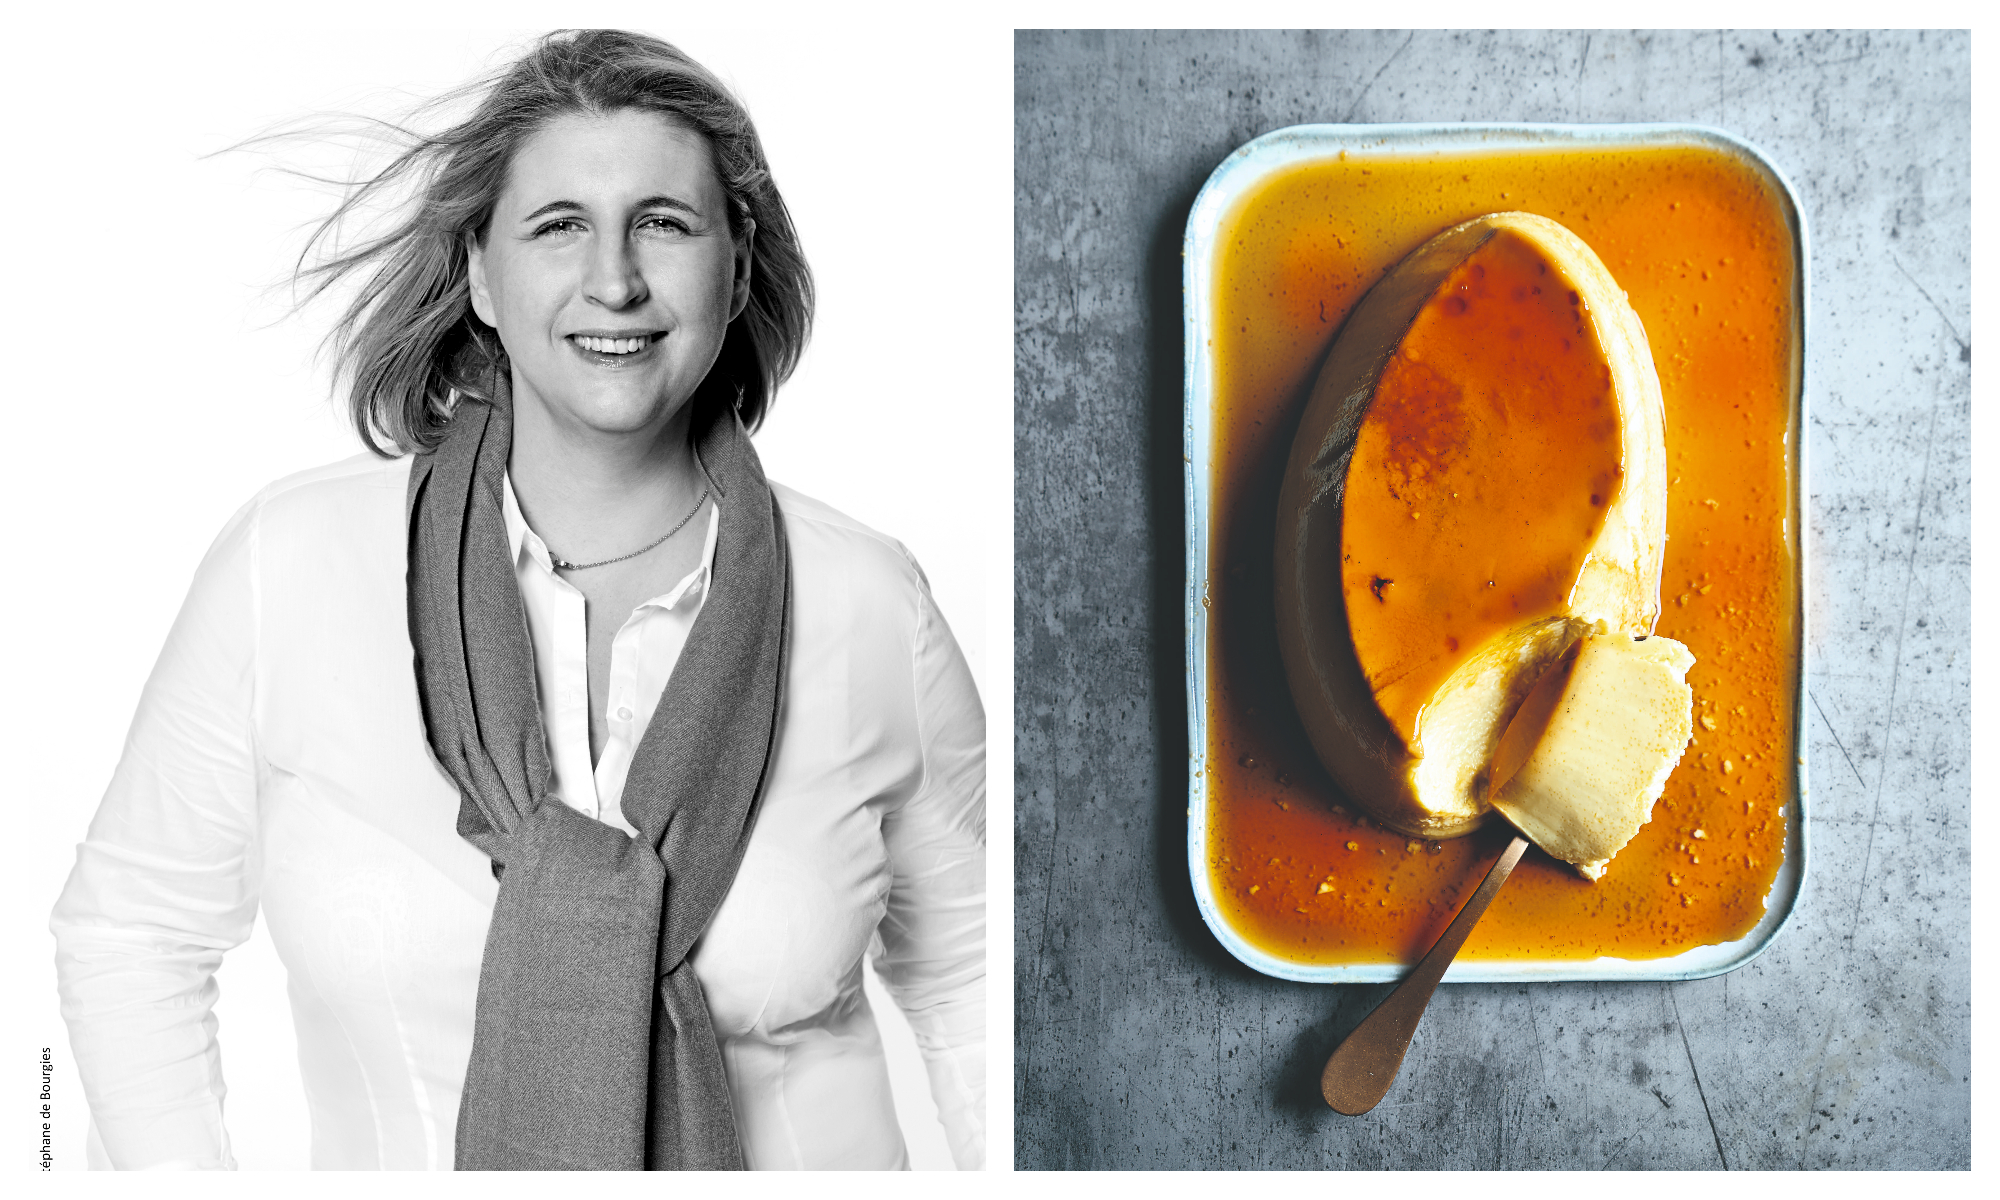 Left, a black and white portrait of 2-star chef Stéphanie Le Quellec. Right, a dish with unctuous crème caramel dessert covered in caramel with a spoon dug into into it.